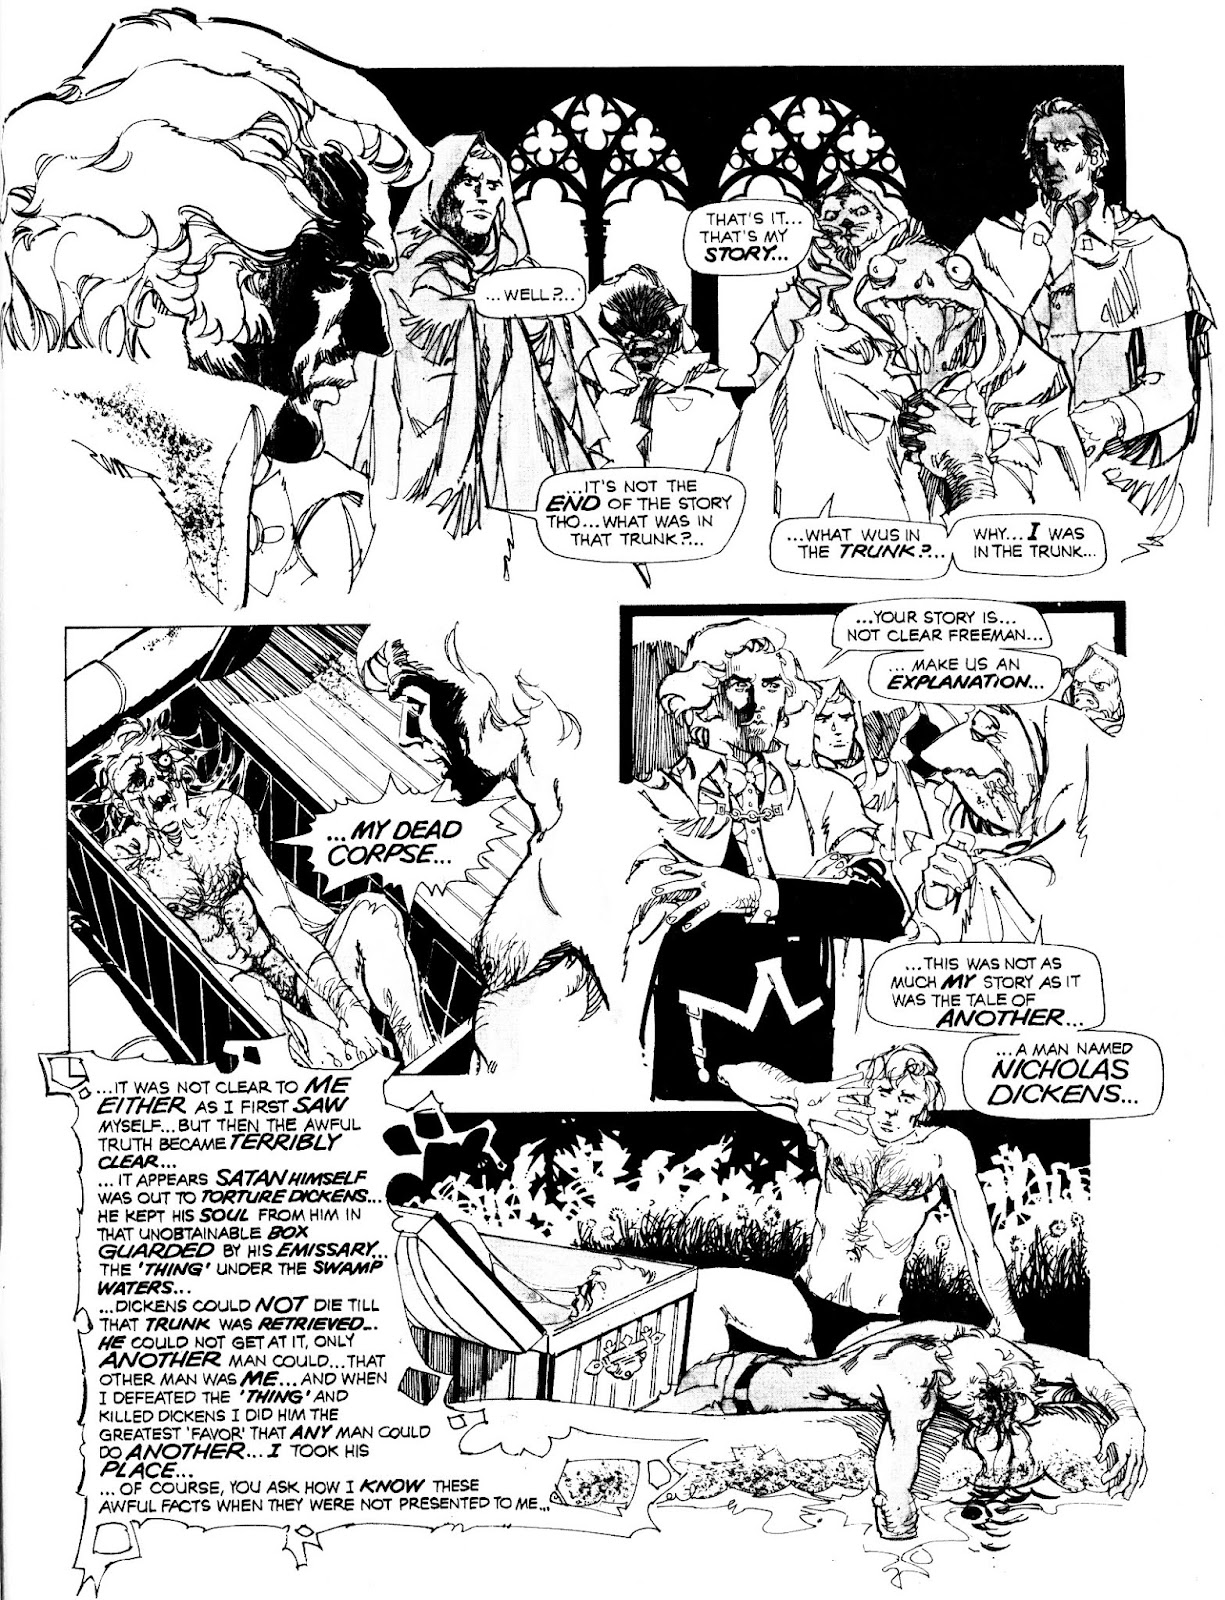 Scream (1973) issue 3 - Page 65